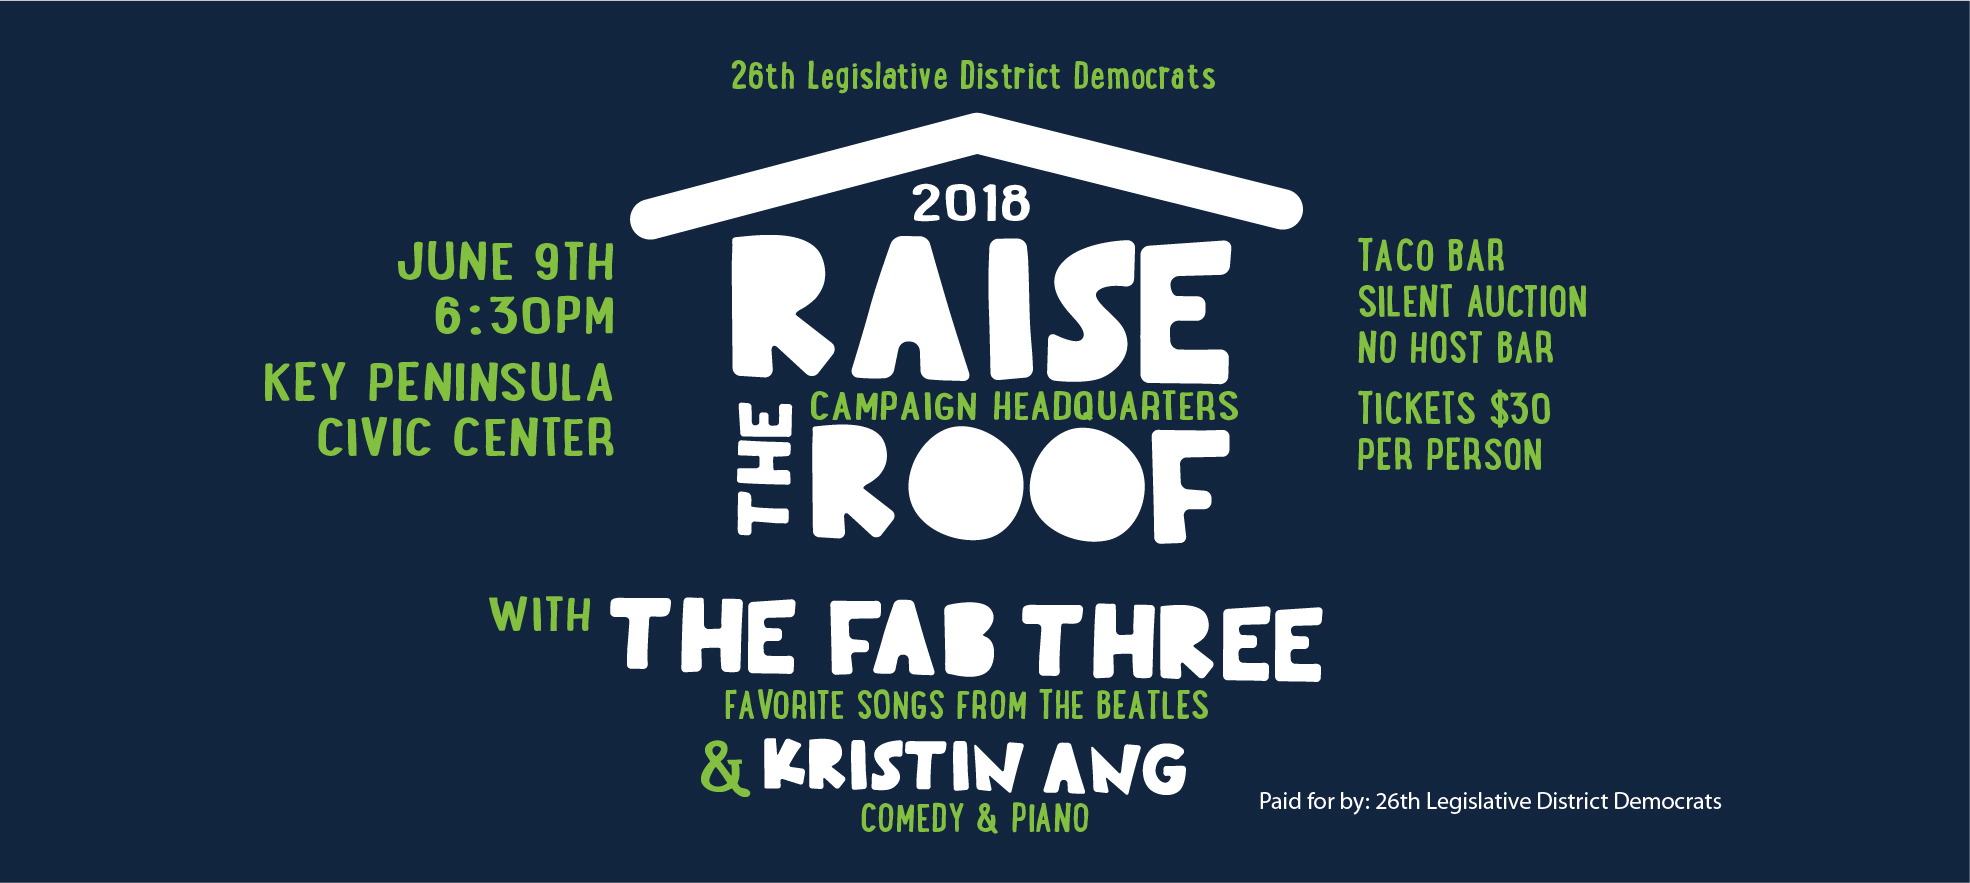 WHAT A GREAT EVENT! THANK YOU EVERYONE FOR YOUR SUPPORT!! The 26th LD Democrats invite you to: A Night of Music & Comedy with: THE FAB THREE Favorite Beatles Songs & KRISTIN ANG Comedy & Piano Date: Saturday, June 9th 2018    Time: 6:30 – 10:00 Tickets: $30 per person / $240 per table of 8 […]